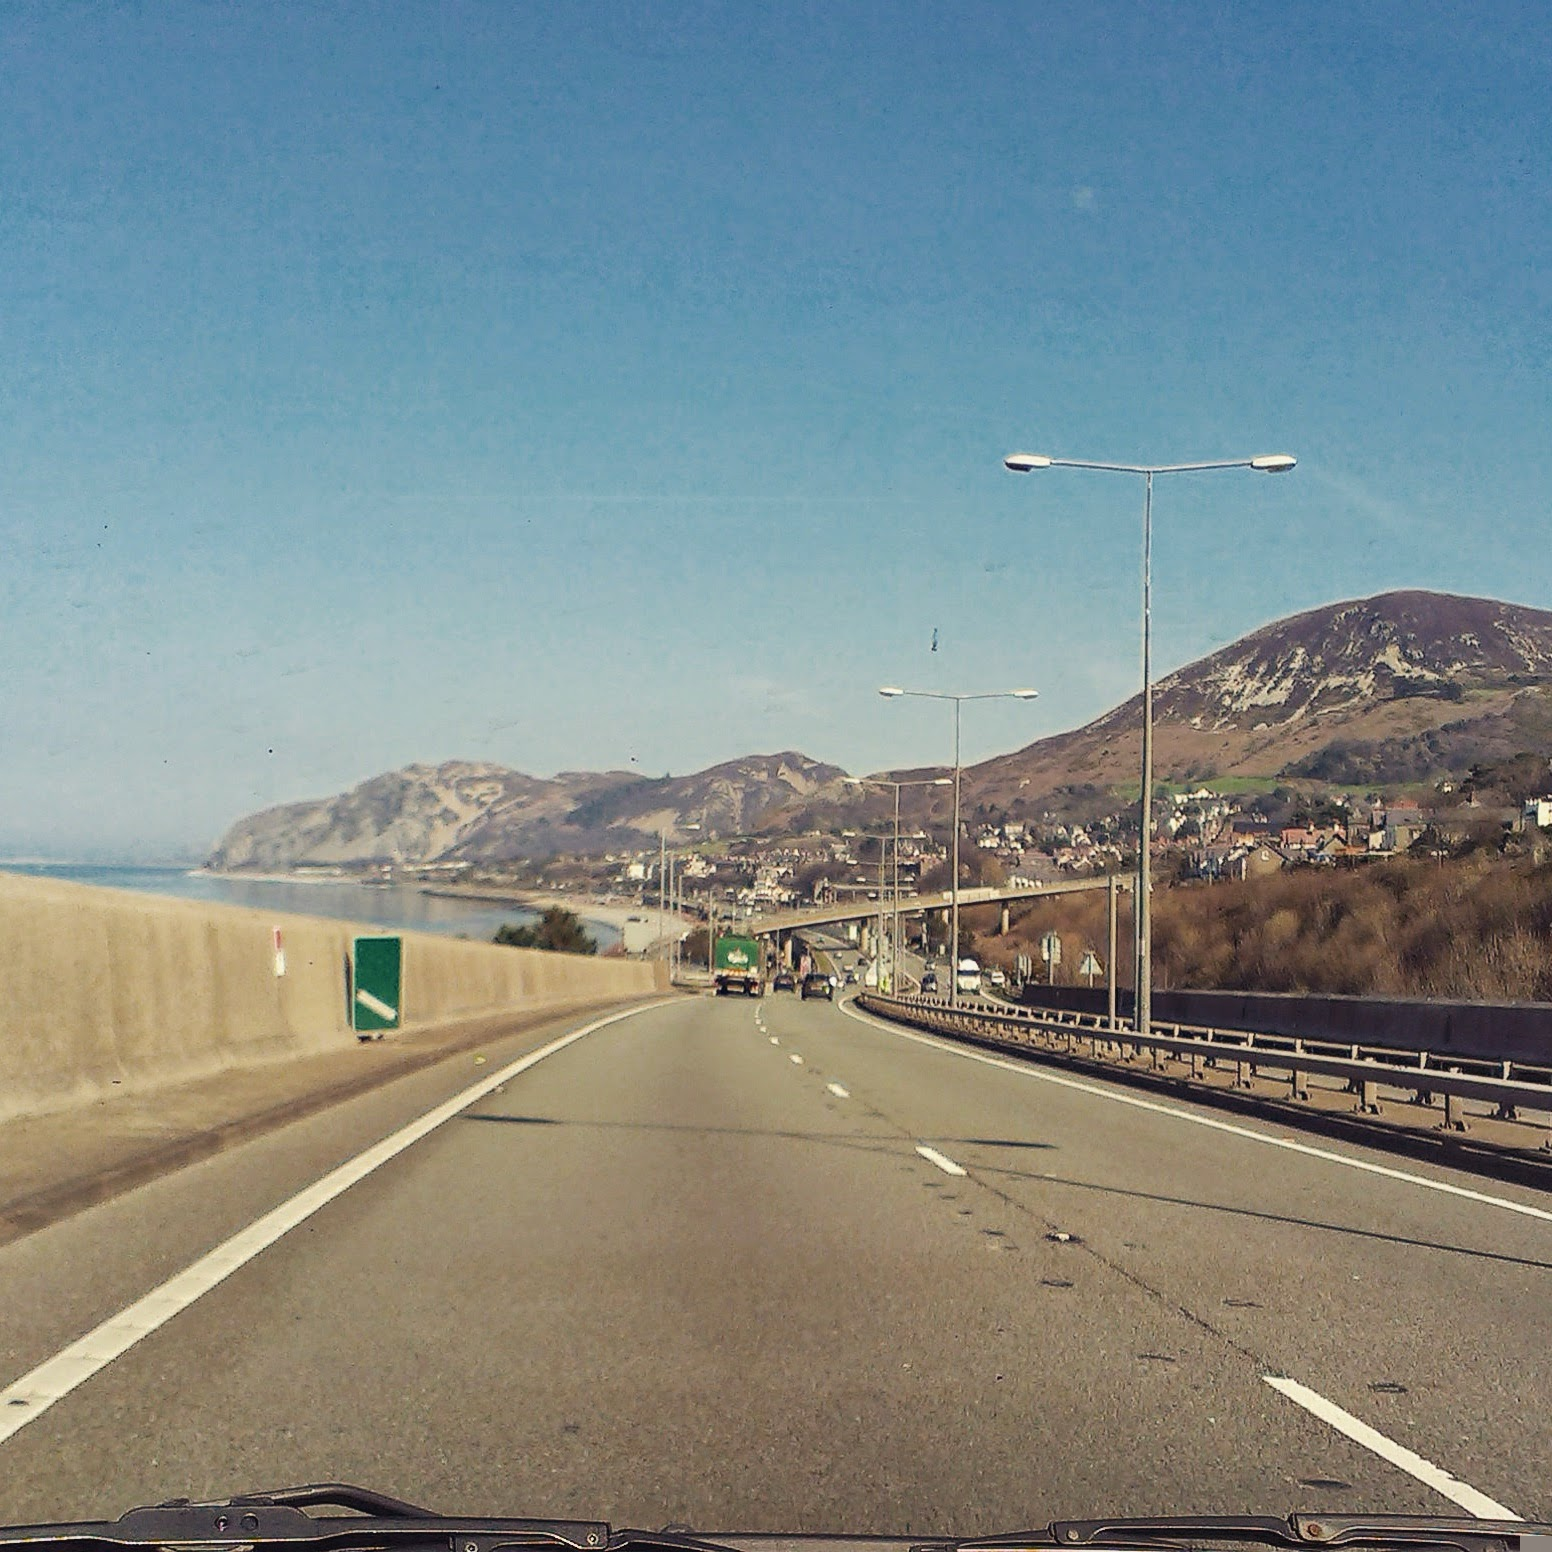 Driving along the A55 in North Wales